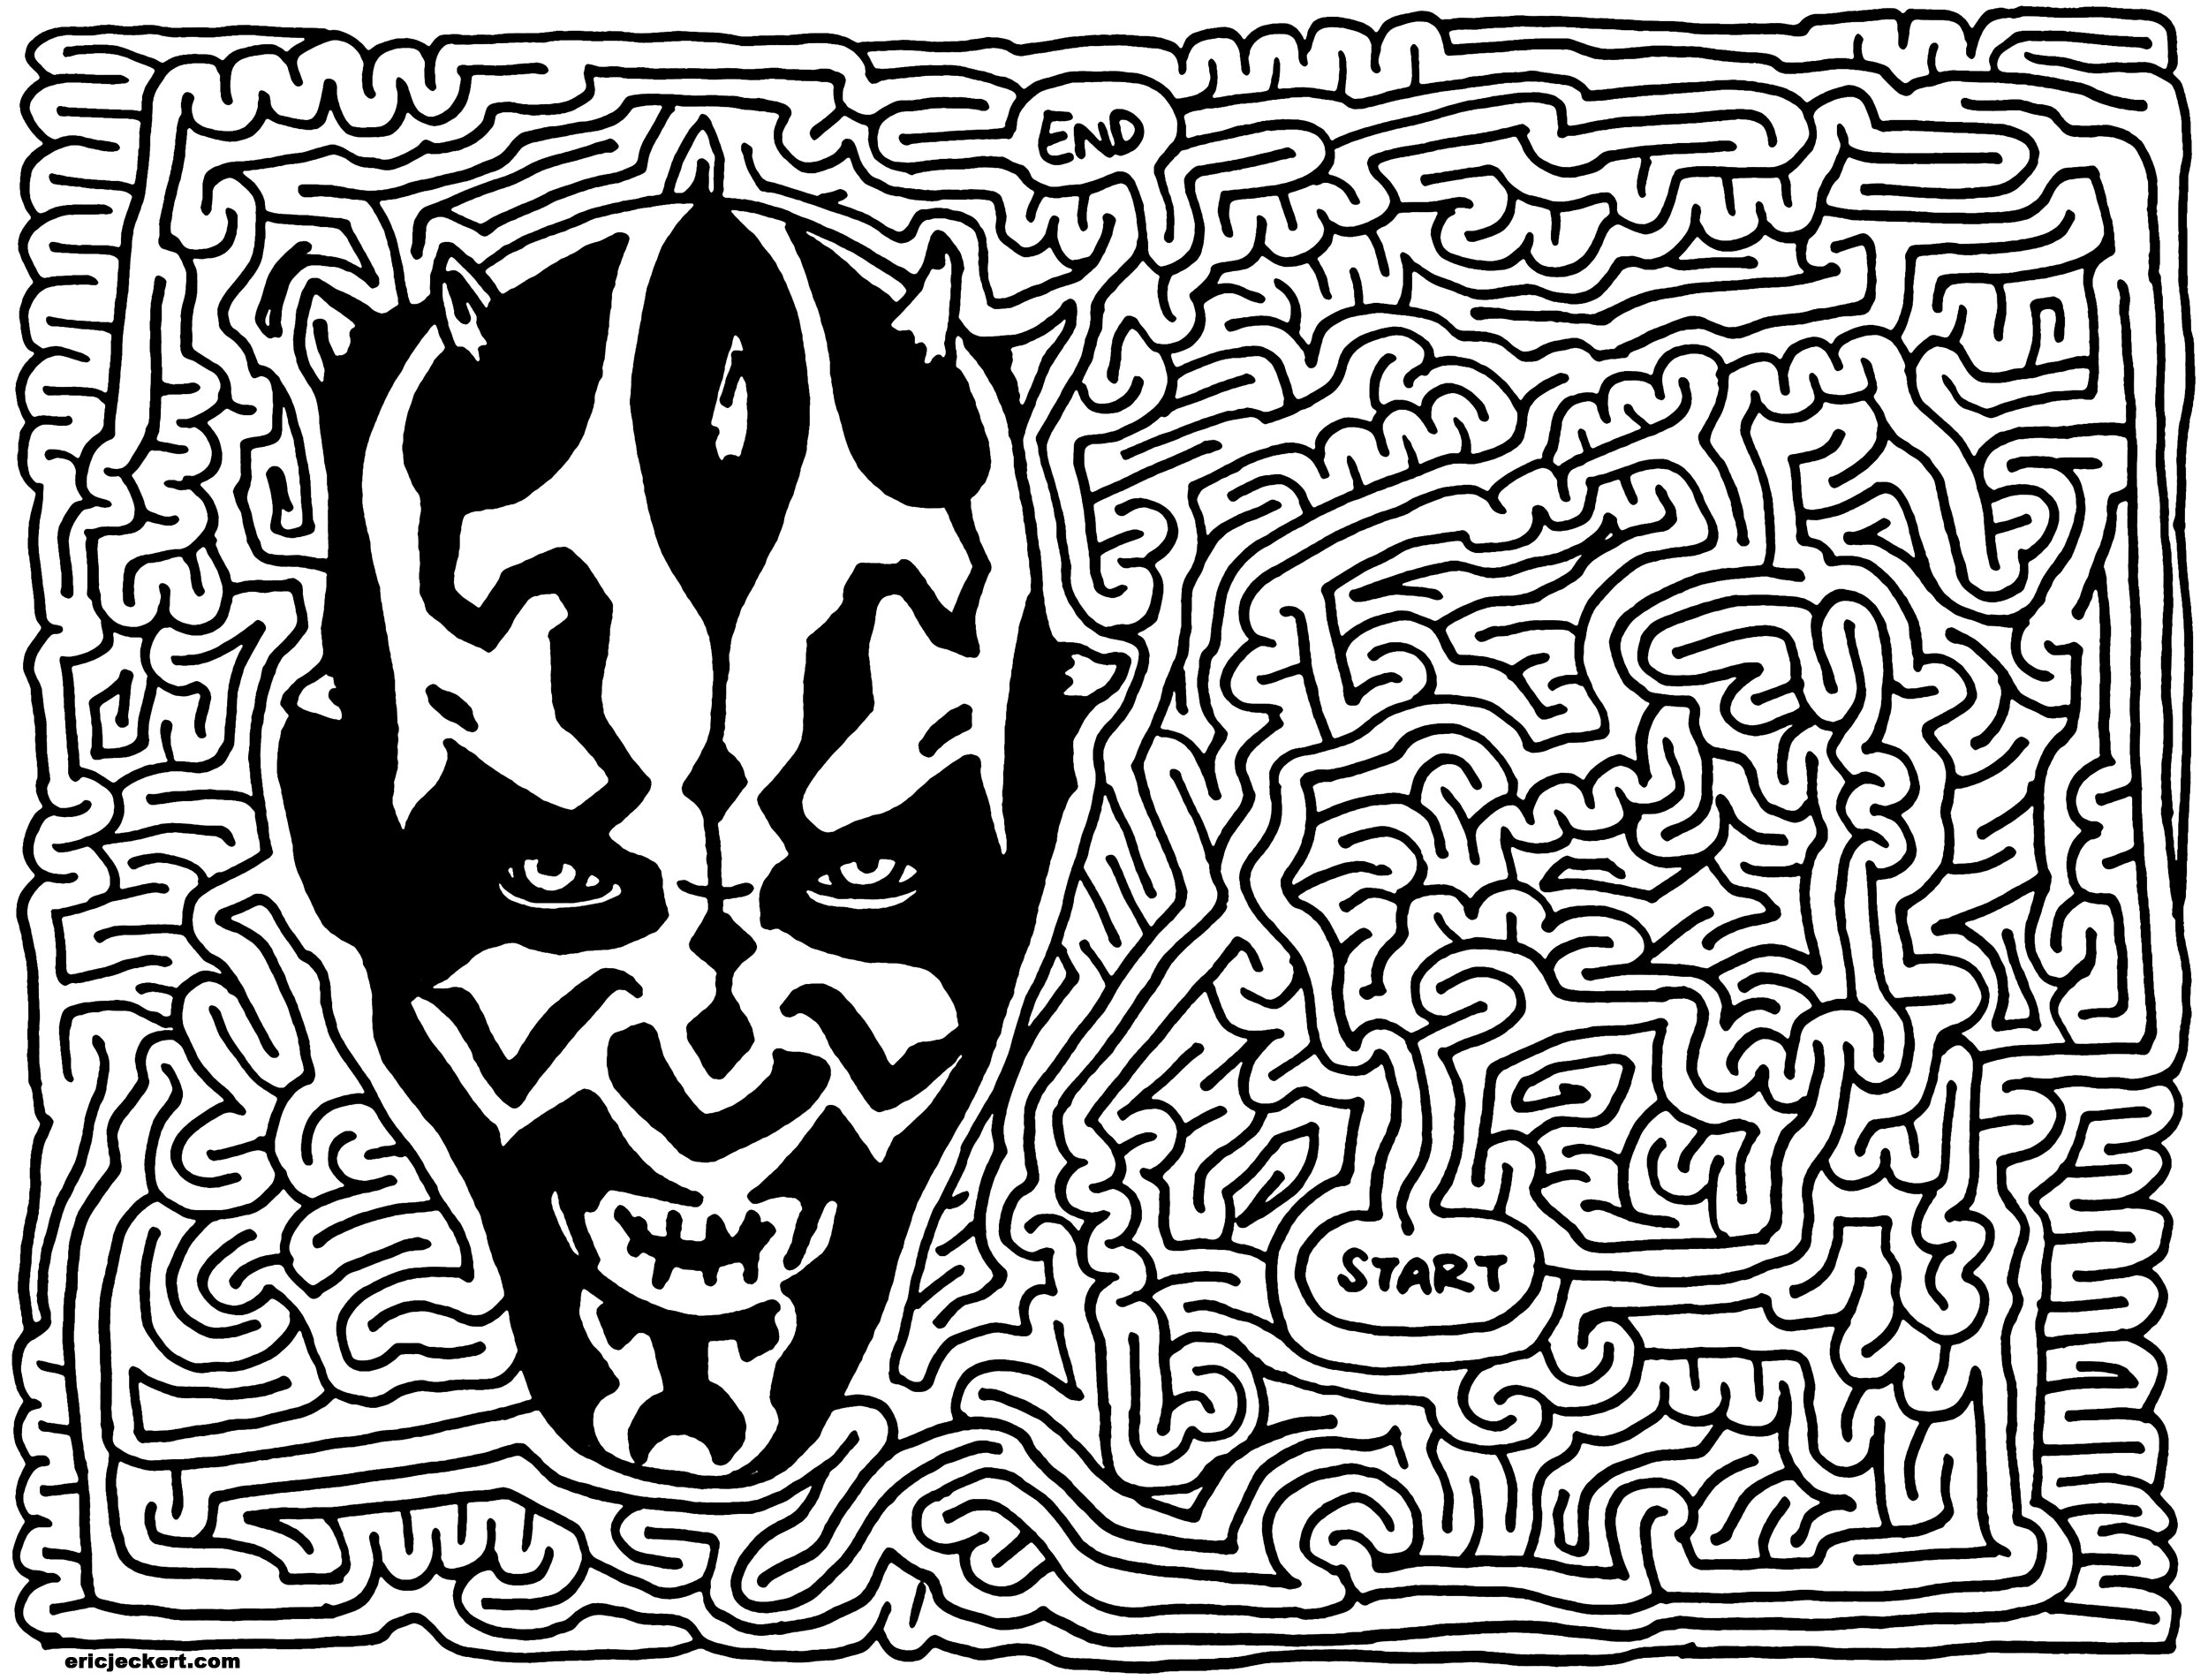 Ray Price Ford >> mazes » star wars - by Eric J Eckert